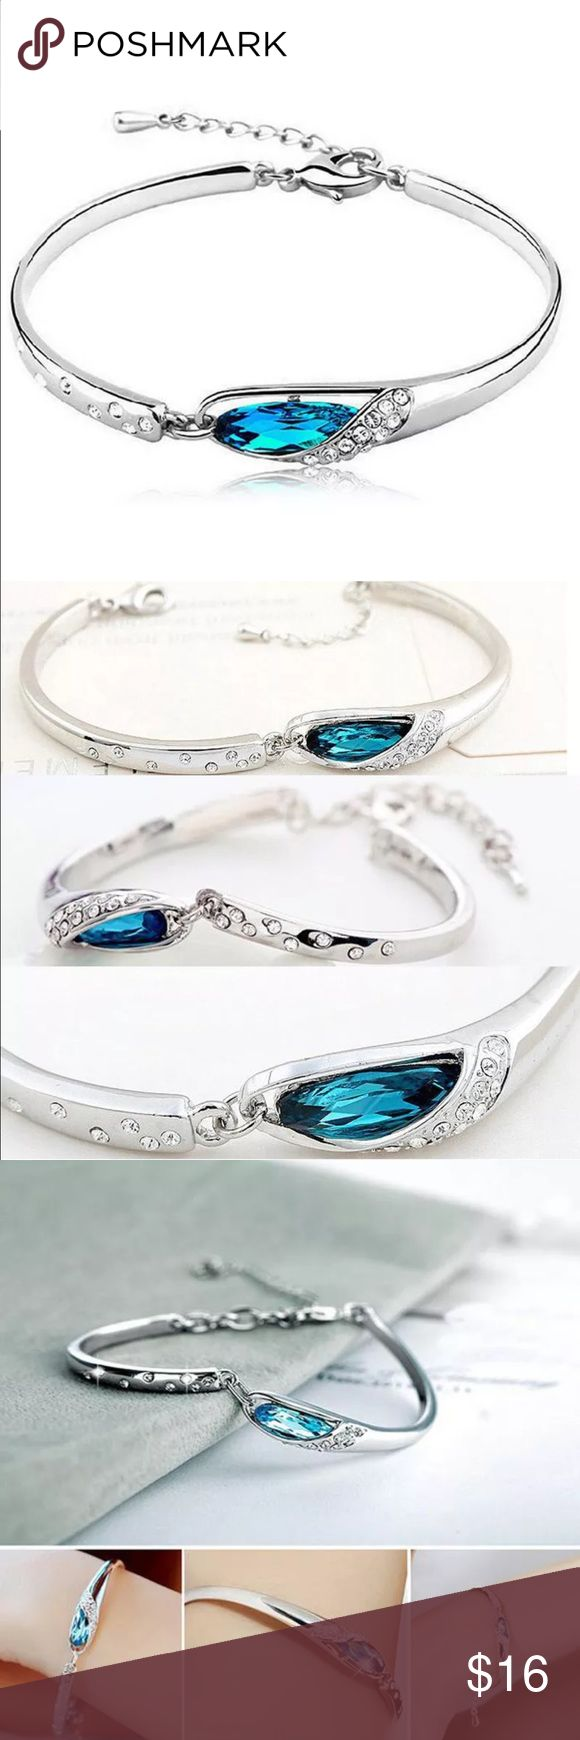 ✨NEW✨Silver & Crystal Adjustable Bangle Bracelet Sophisticated and Delicately Crafted Silver & Crystal Ladies Bangle Bracelet. Beautiful addition to any wardrobe where you'd like to add a little style. Bracelet is size adjustable.    Colour: Silver plated  Material: Alloy, Crystal  Chain length: 20+6cm/7.87+2.36in  Packing: 1 pc Bracelet Jewelry Bracelets